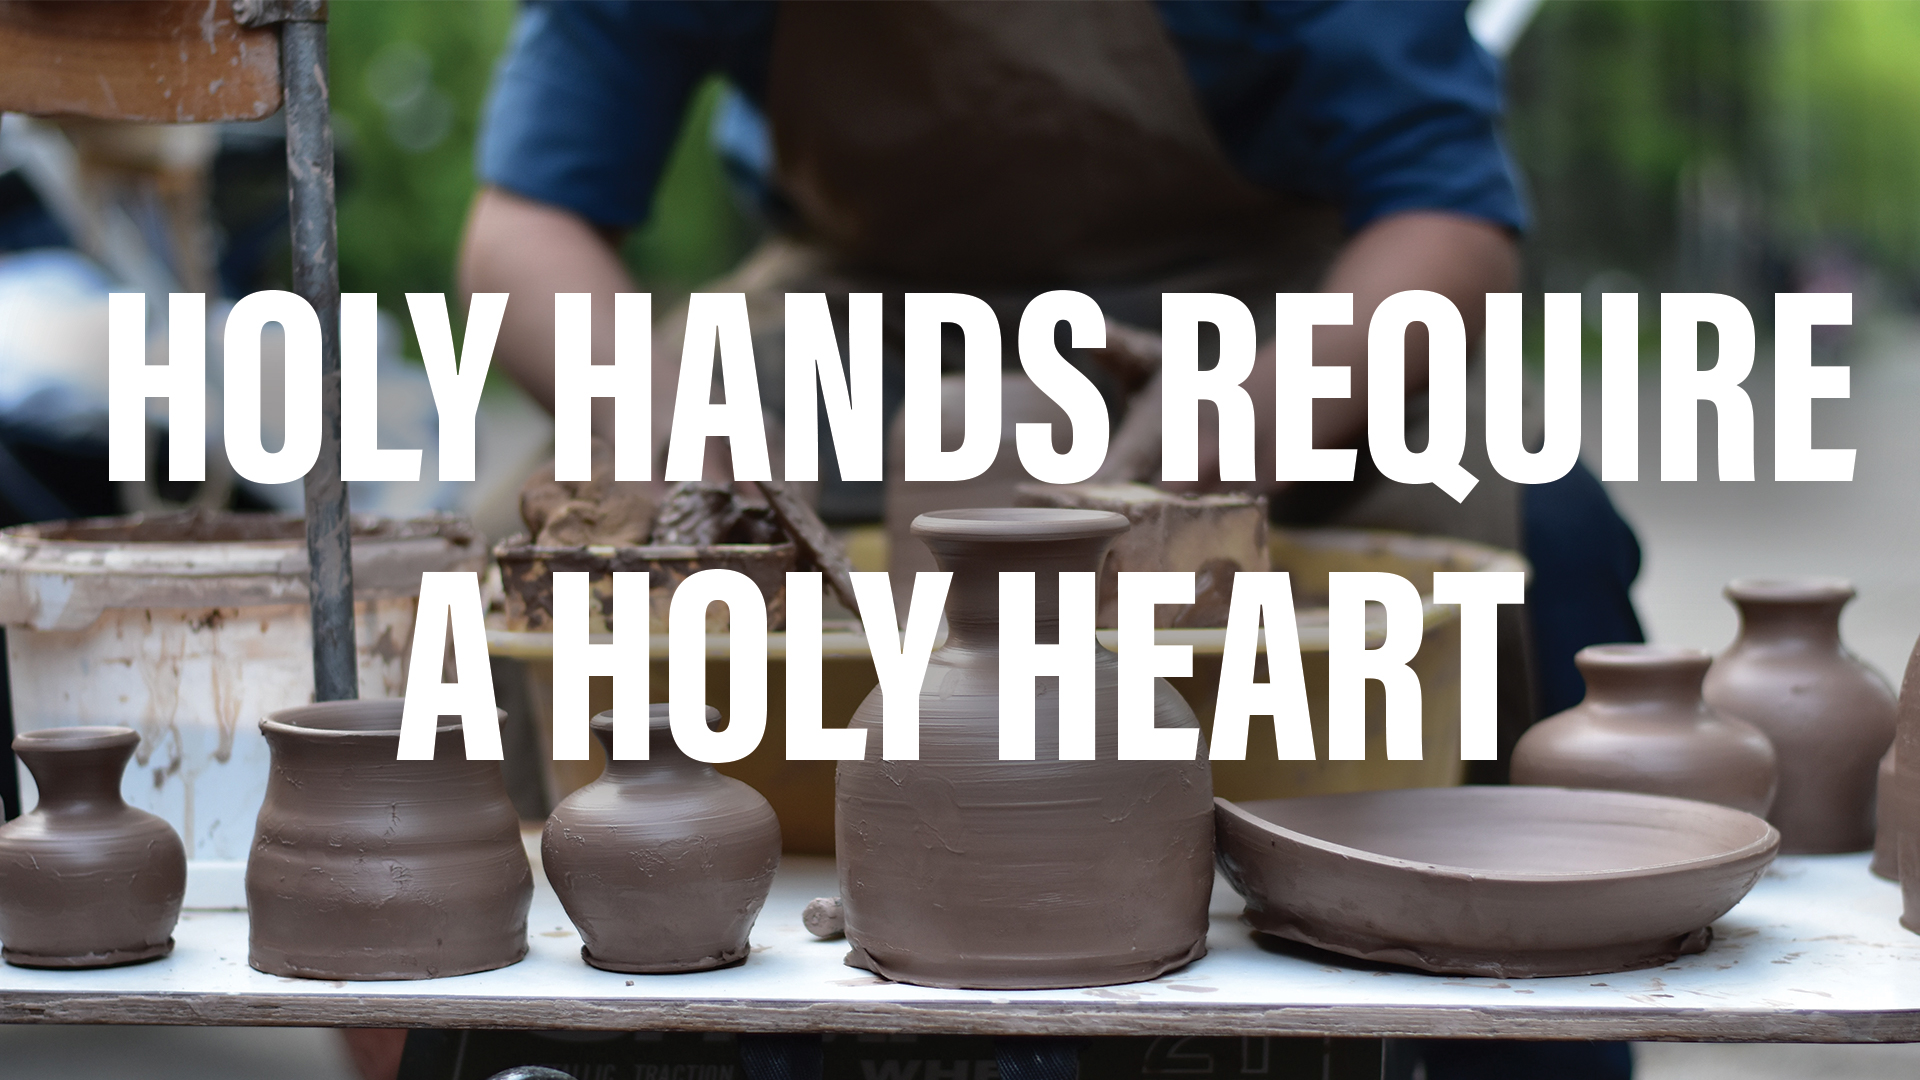 Holy Hands Require A Holy Heart